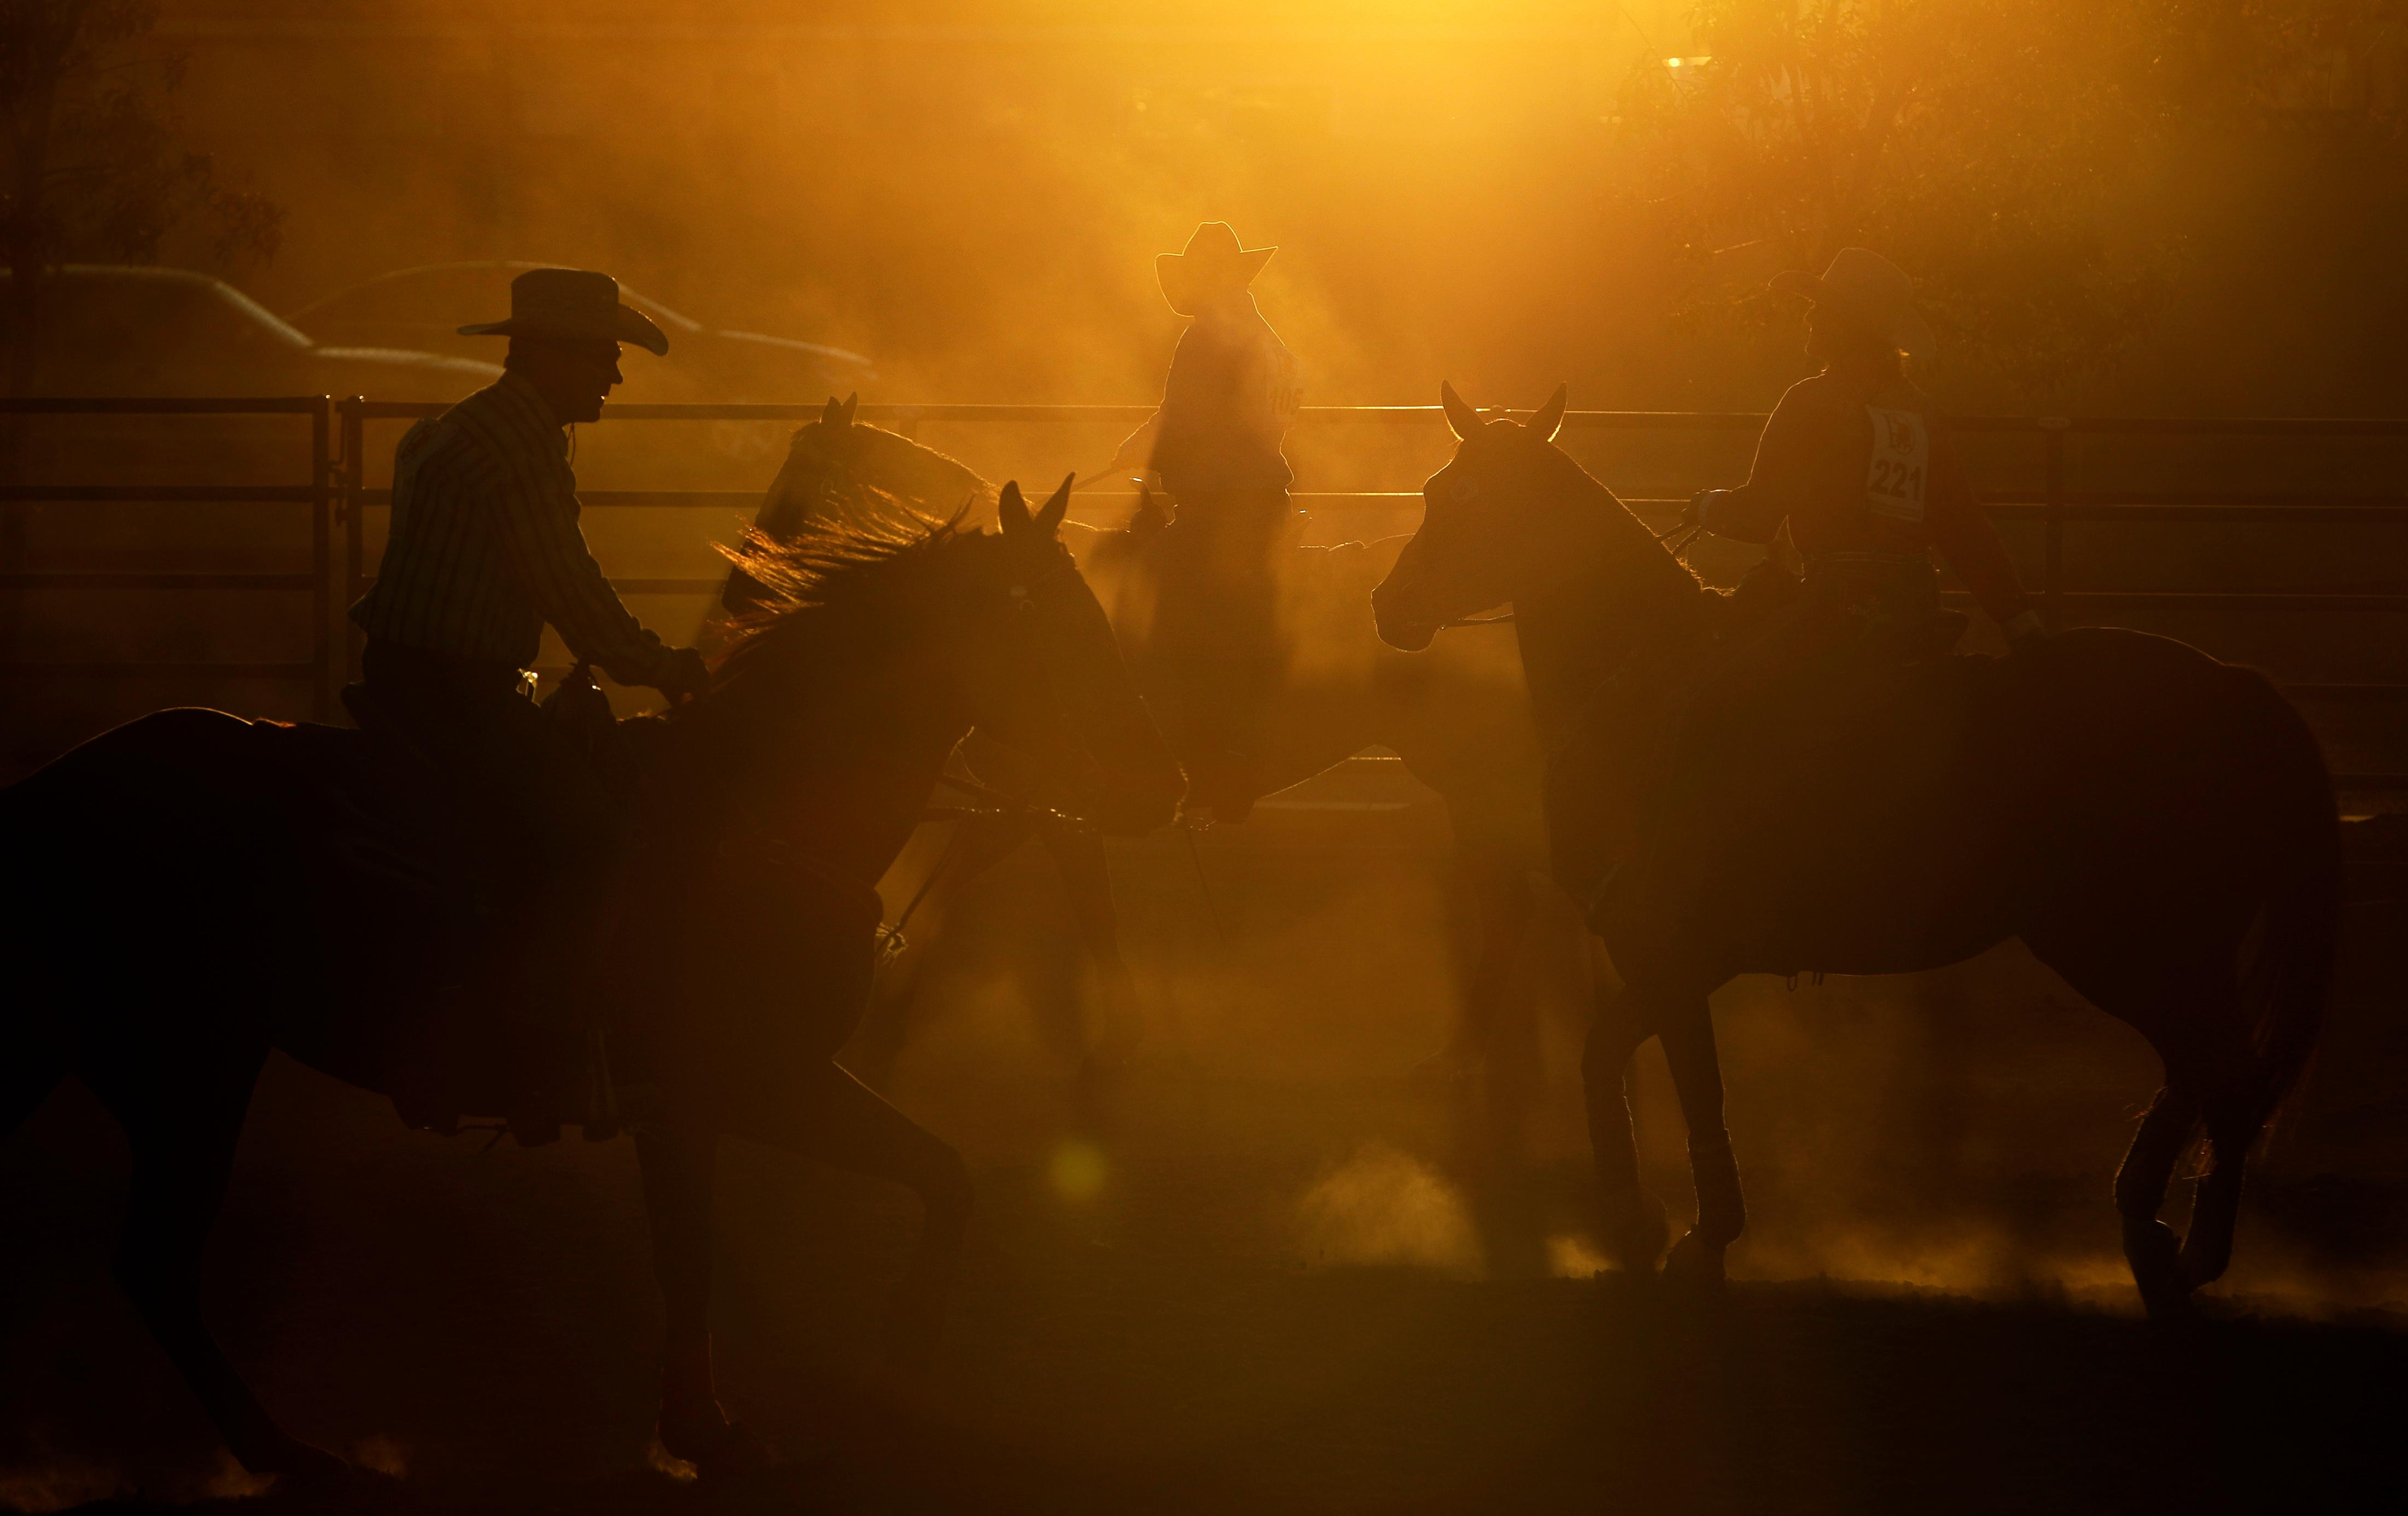 In this Sept. 23, 2017, photo, competitors ride horses in a warm-up area before competing in the Bighorn Rodeo in Las Vegas. The drew more than 200 spectators and 73 participants from across the U.S. The circuit's finals are taking place this weekend in Albuquerque, New Mexico.  (AP Photo/John Locher)